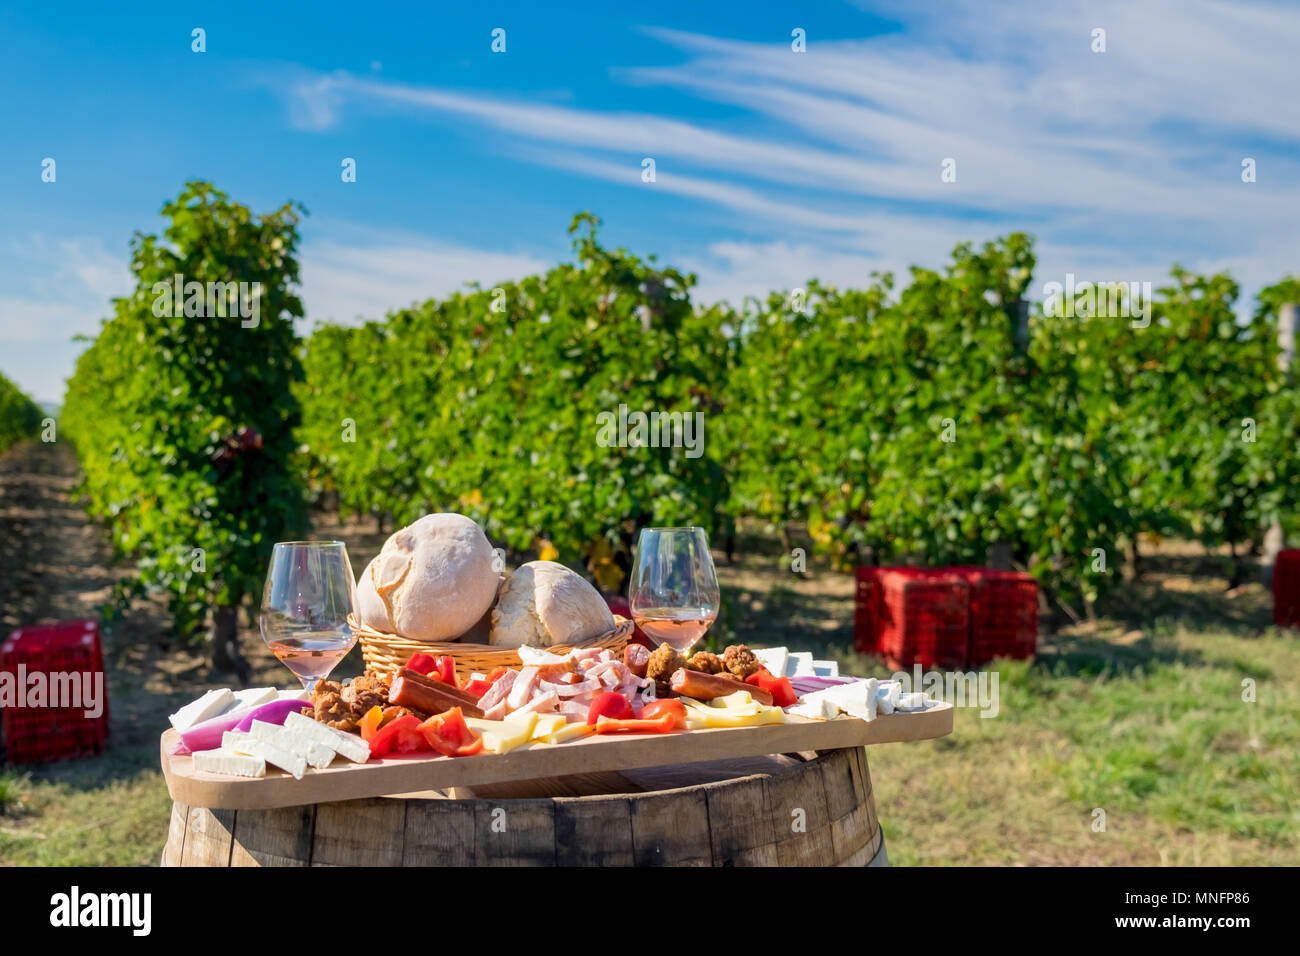 Traditional Romanian food plate with wine and vineyards in the background. Cheese, bread, sausages,  onions and red wine in glass - Stock Image